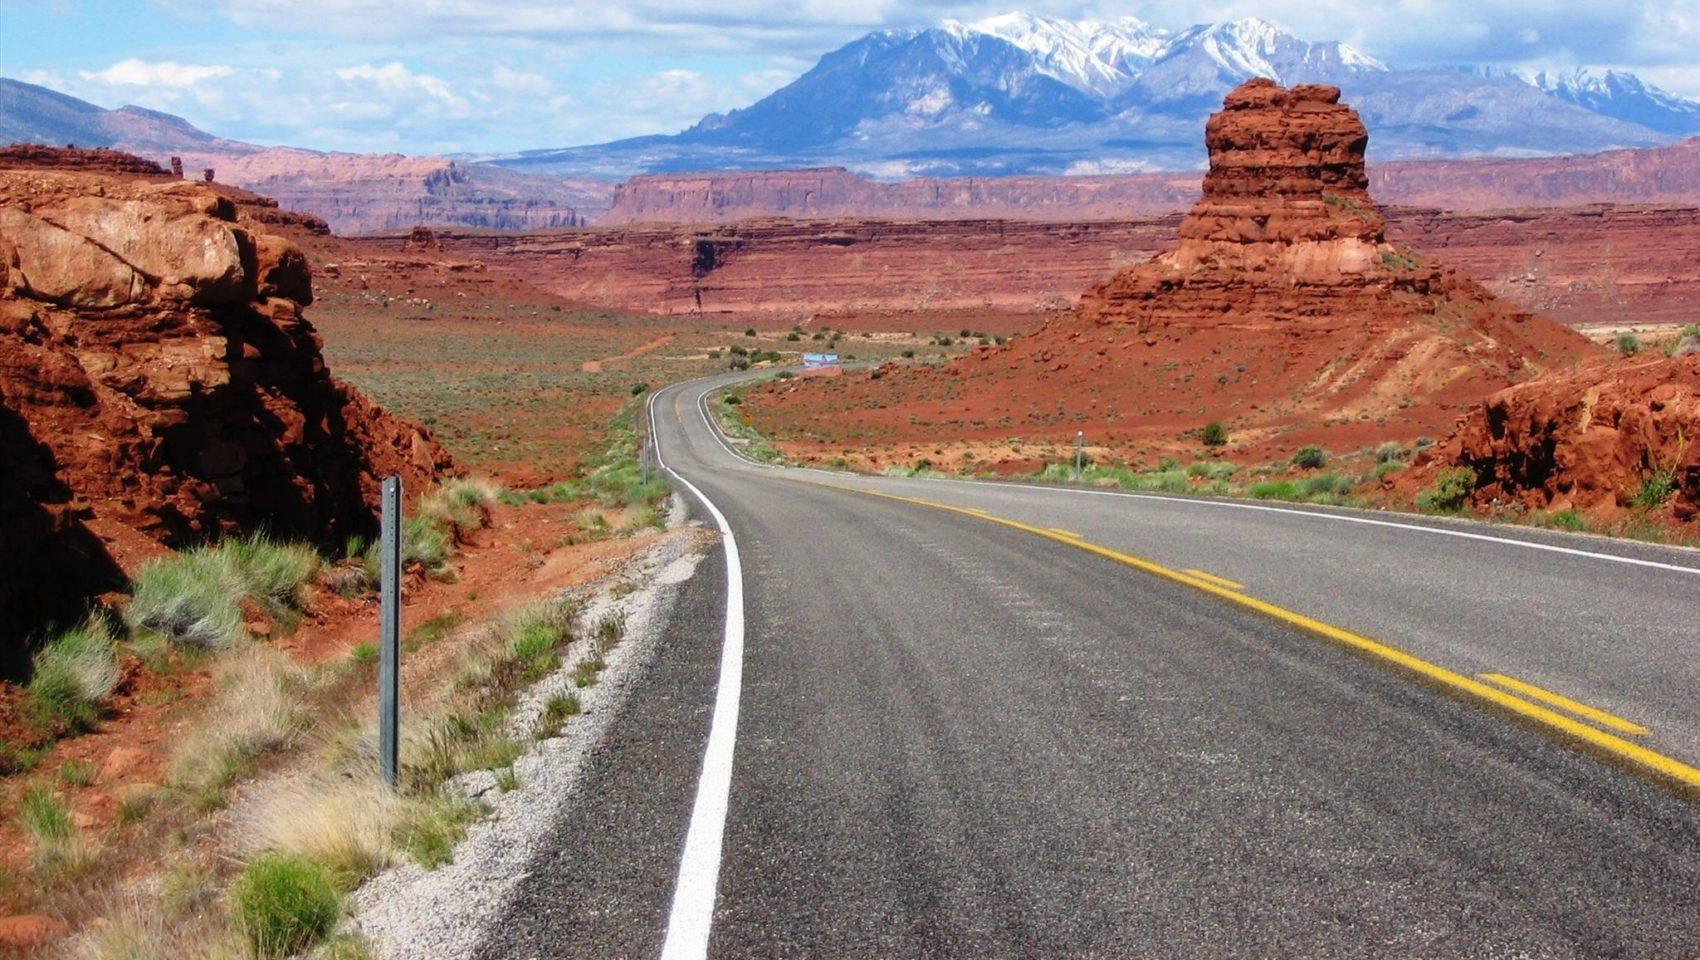 Road into Moab, Utah